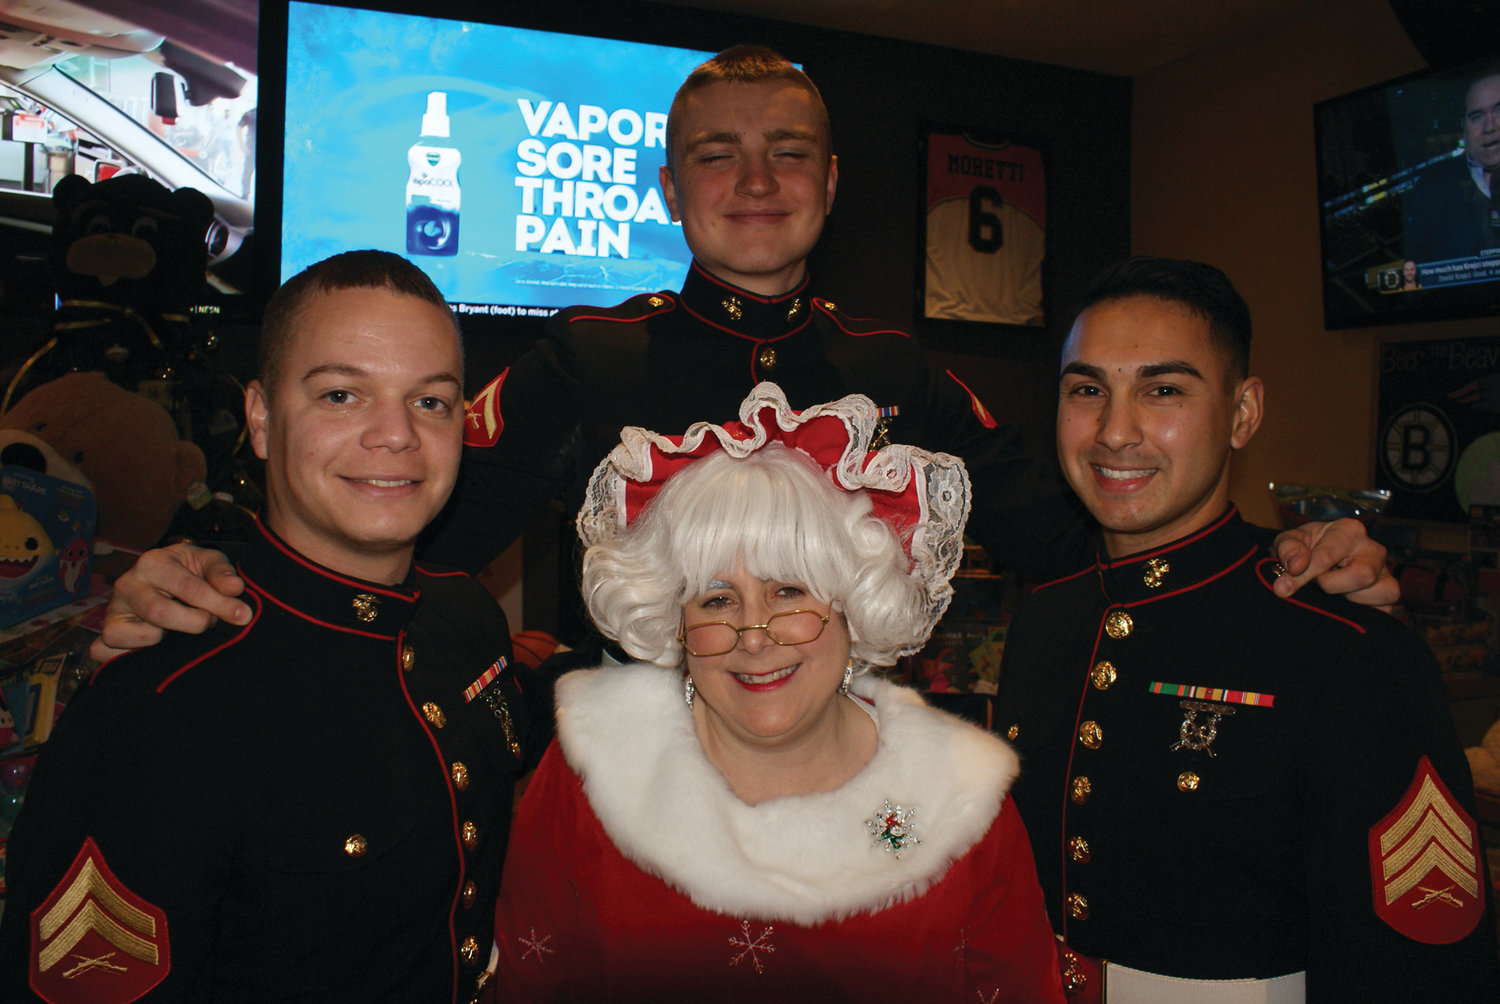 PROUD MARINES: Mrs. Claus shares a moment with Marine Cpl. Jonathan Delgado, Lt. Cpl. Adam Matuzzek and Sgt. Brian Soares.